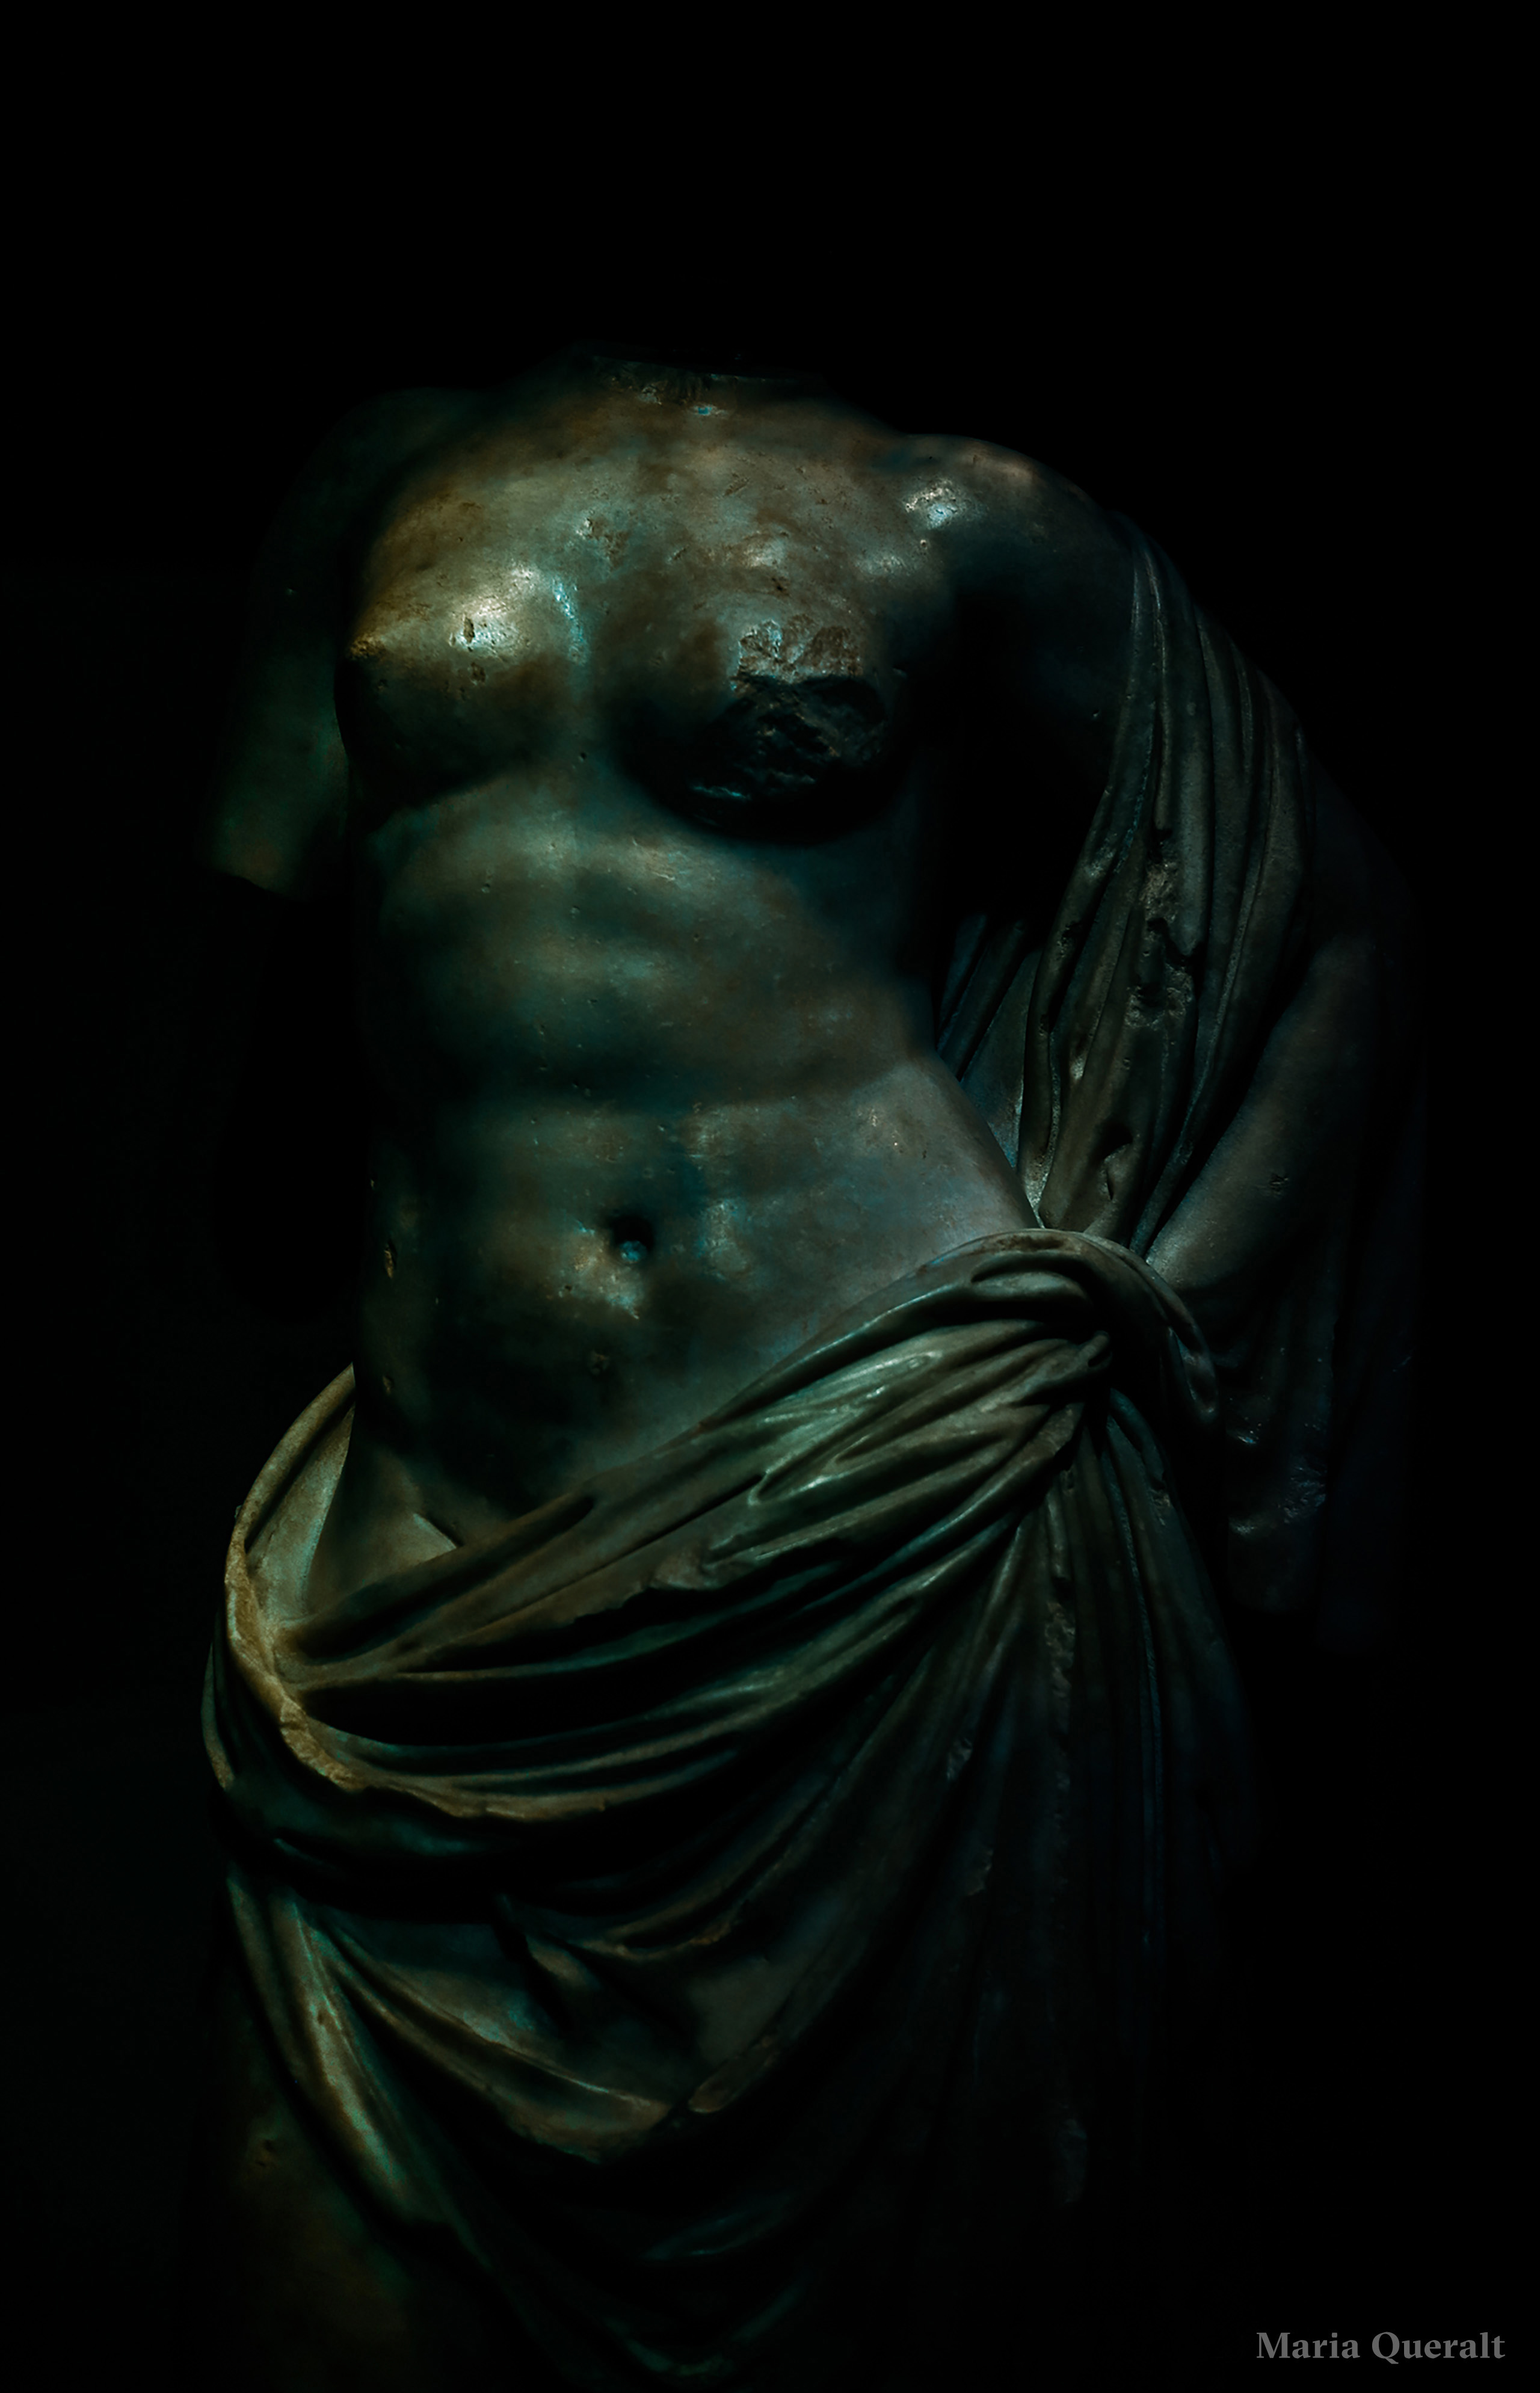 Digital art work based on the carrara marble sculpture of Venus at the Museo Provincial de Zaragoza original from Rome. Photography and retouch by Maria Queralt